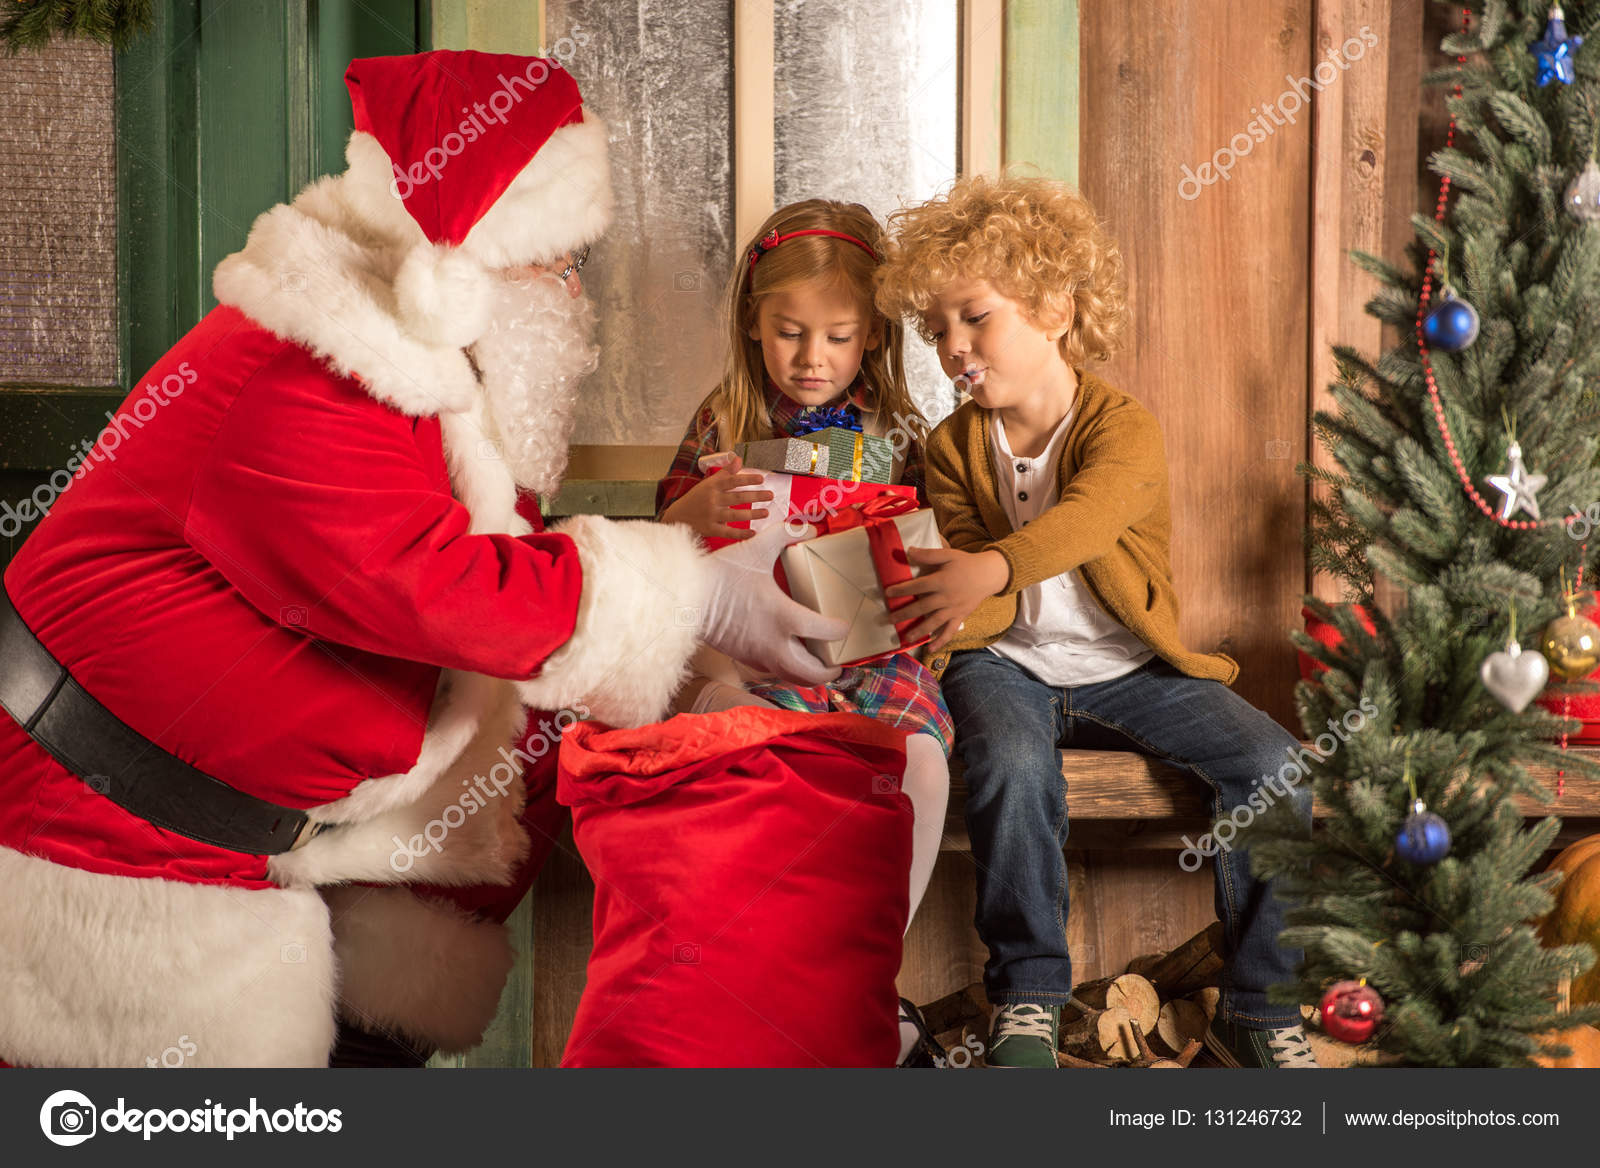 santa claus giving gift boxes to children stock photo - Santa Claus Children